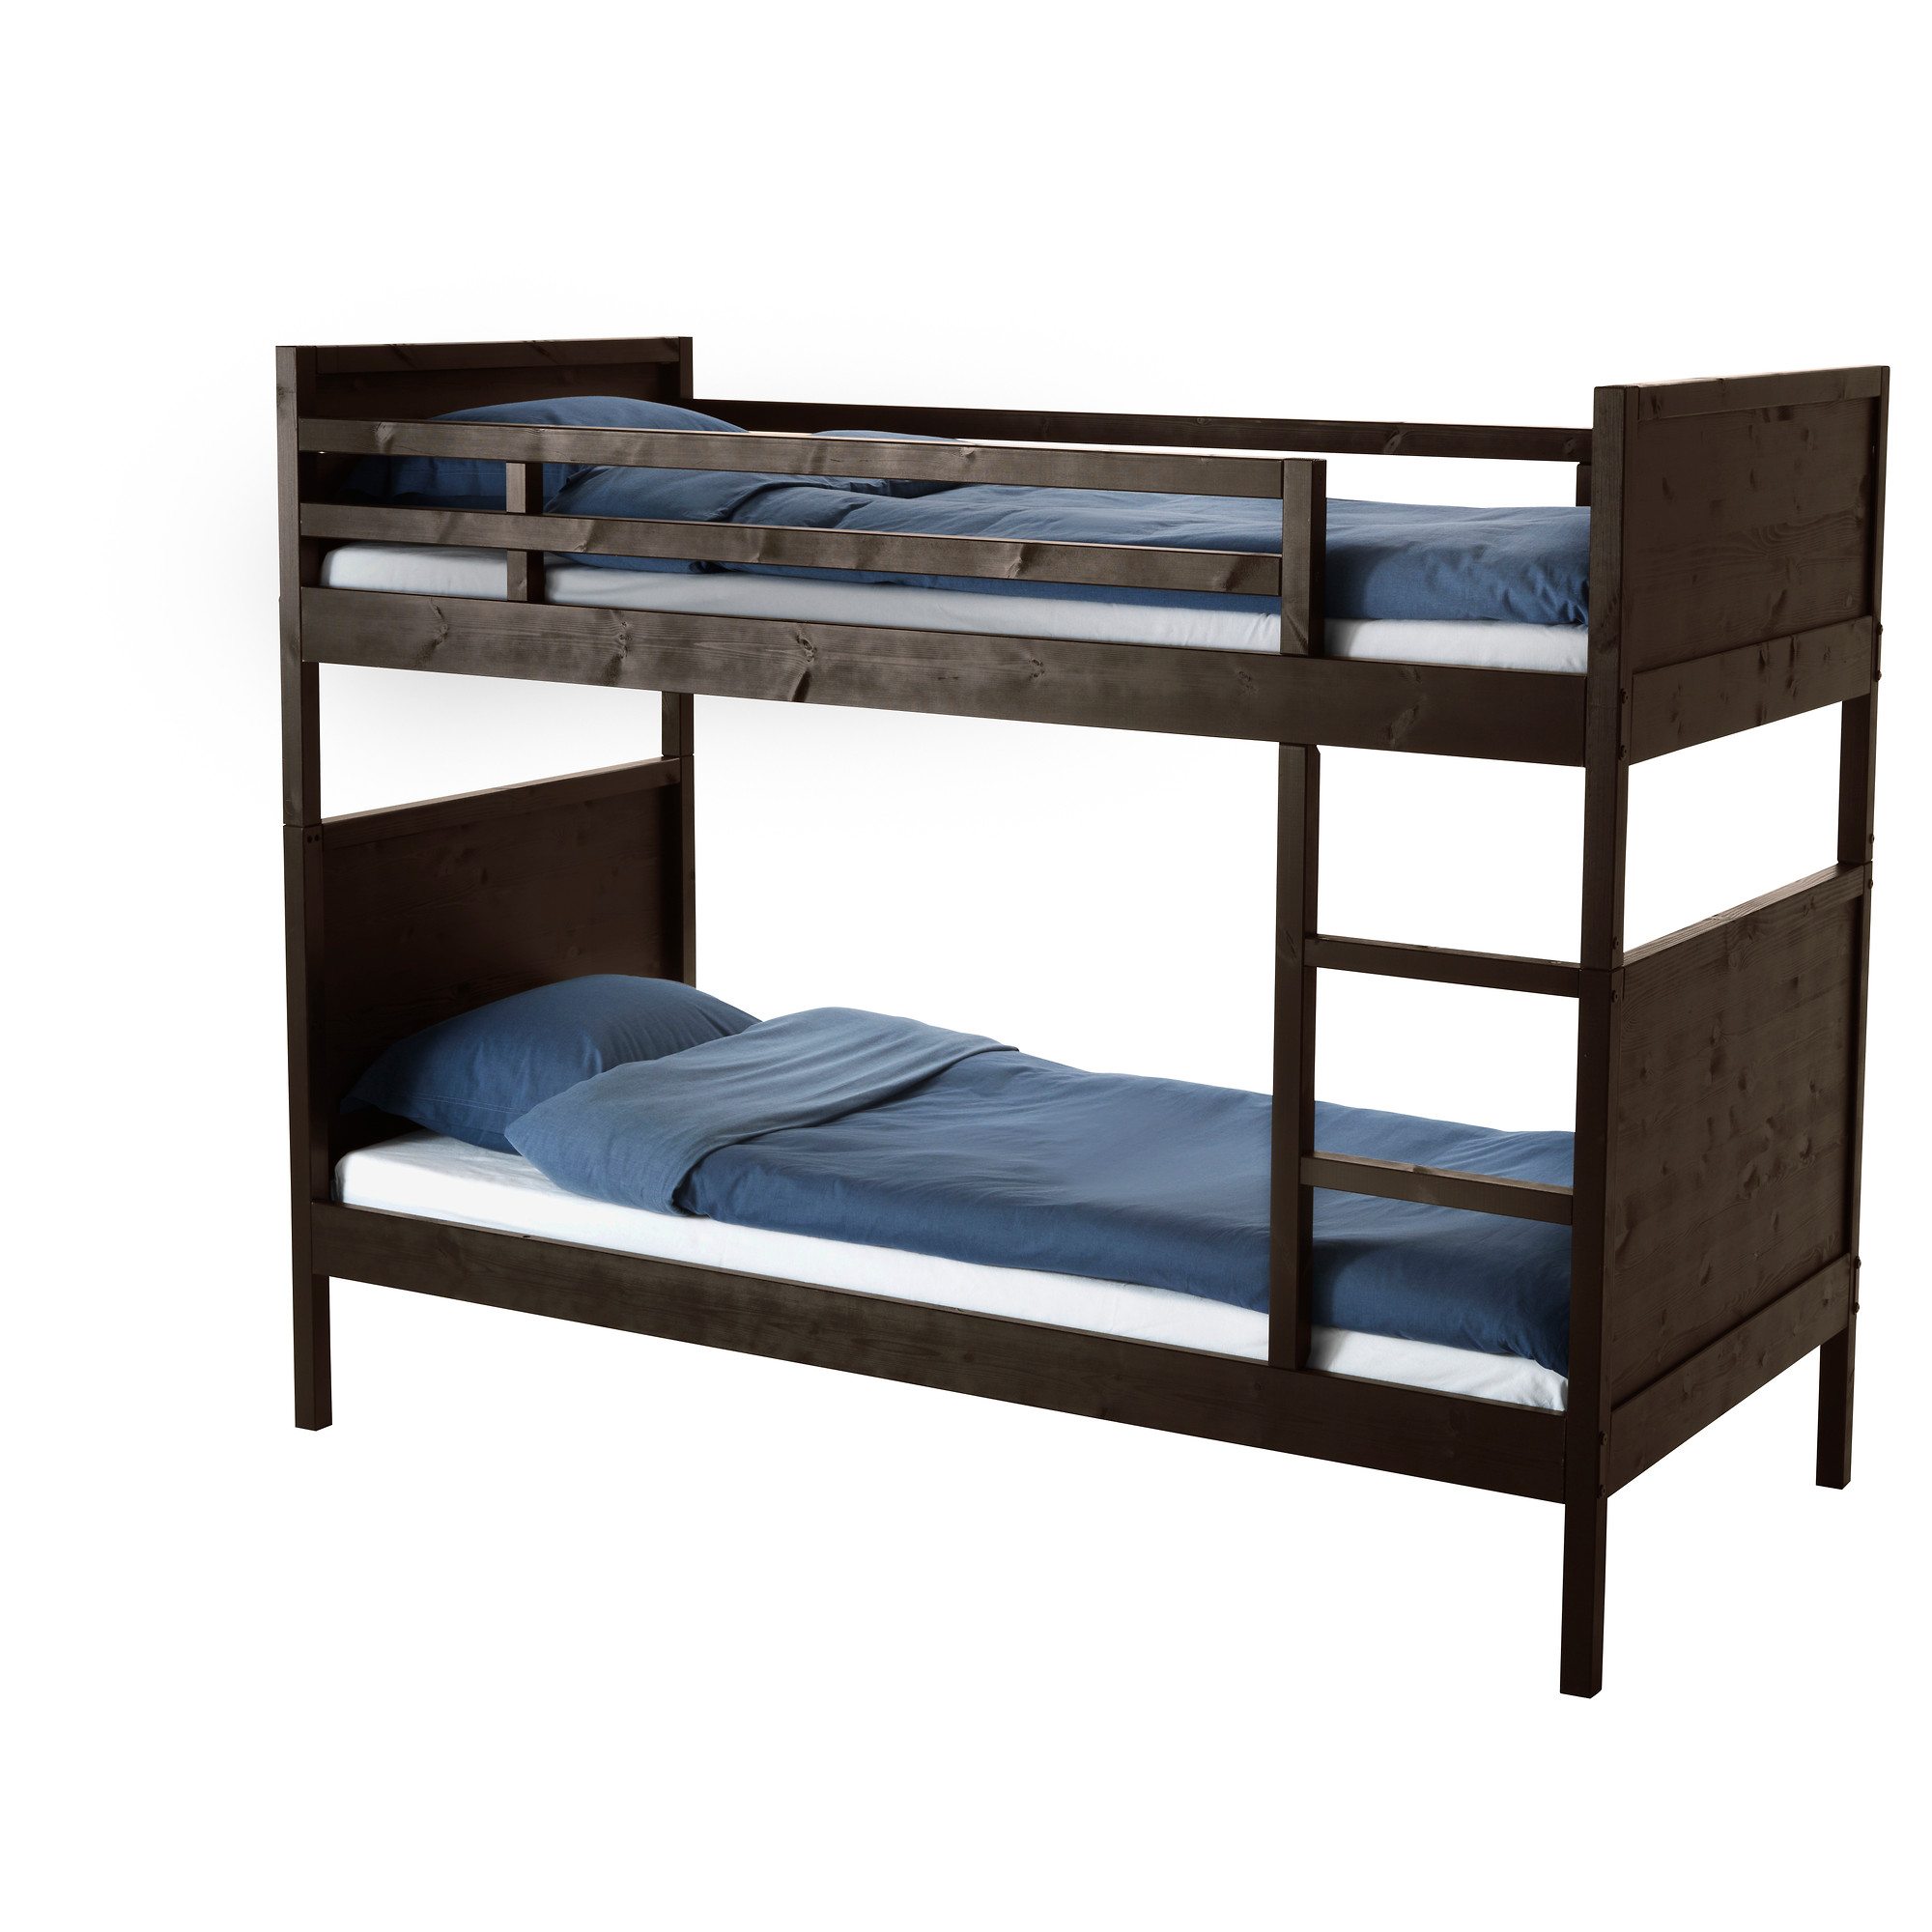 Loft Bed Room norddal bunk bed frame - ikea